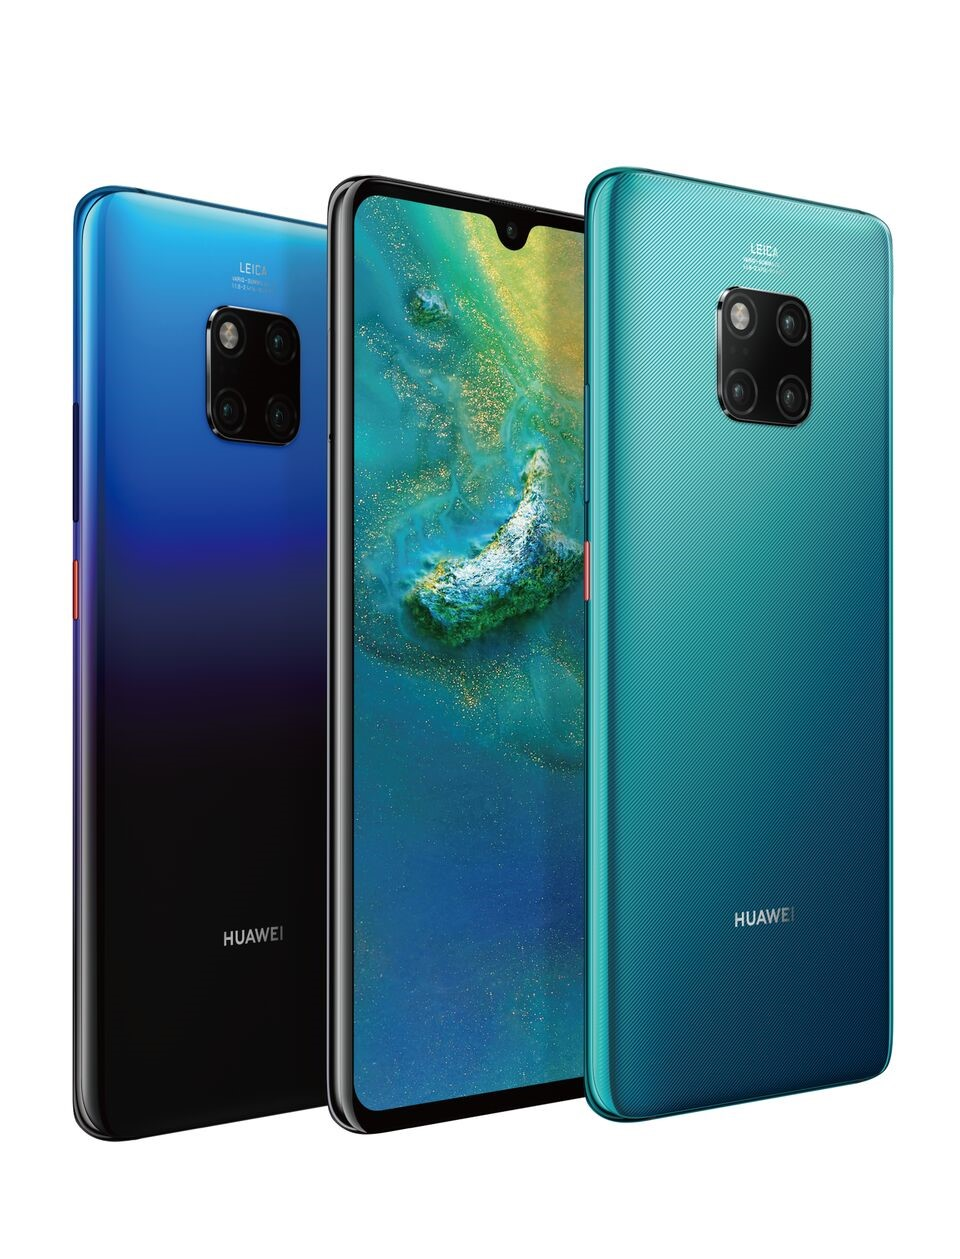 6 Reasons Why the HUAWEI Mate 20 Pro is the King of Smartphones